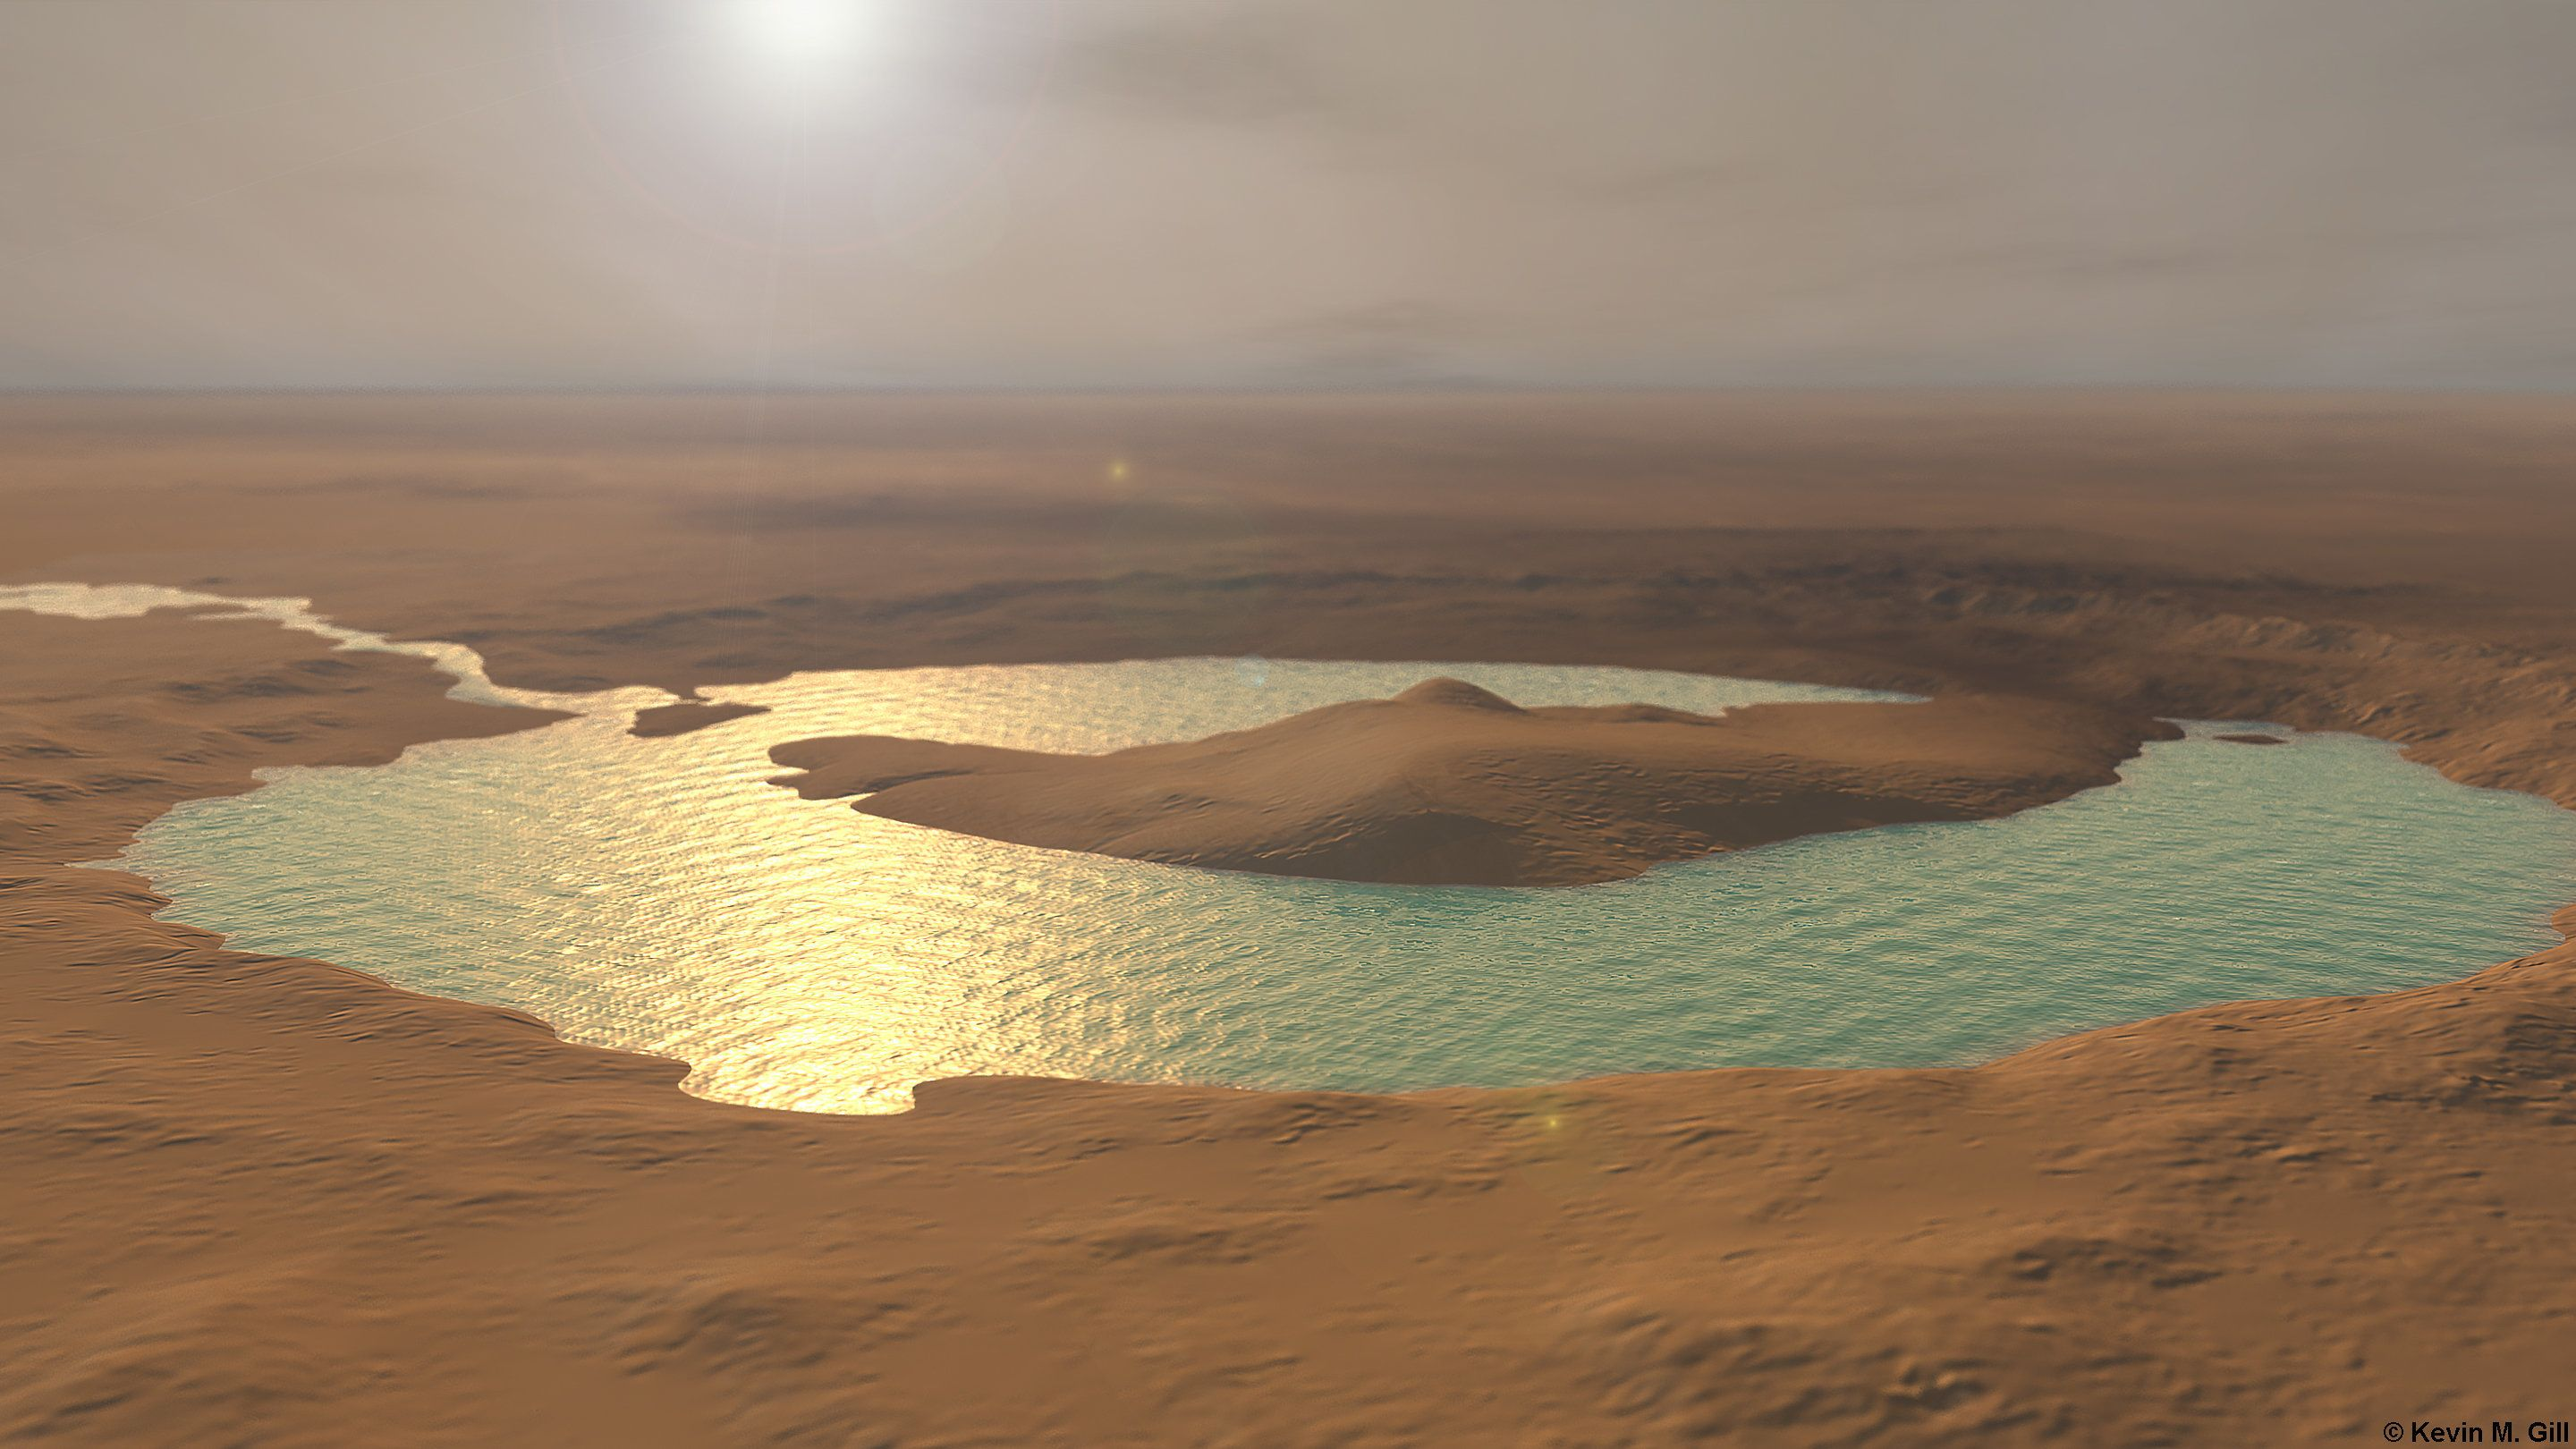 "Inspired by recent news that using the instruments on the Curiosity rover, NASA has been able to determine that Gale Crater used to contain a lake of liquid water.   <a href=""http://www.nasa.gov/press/2014/december/nasa-s-curiosity-rover-finds-clues-to-how-water-helped-shape-martian-landscape/#.VIiHIzHF98H"" rel=""nofollow"">www.nasa.gov/press/2014/december/nasa-s-curiosity-rover-f...</a> <a href=""http://www.universetoday.com/117139/curiosity-rover-data-indicates-gale-crater-mountain-used-to-be-a-lake/"" rel=""nofollow"">www.universetoday.com/117139/curiosity-rover-data-indicat...</a>   Crater is modeled using altimetry data derived from the ESA's Mars Express High Resolution Stereo Camera (HRSC). Surface coloring for the foreground crater is a colorized version of the same HRSC imagery. The background terrain is re-colorized (to match) Viking imagery. Created and rendered using Autodesk Maya with postadjustments in Adobe Photoshop."